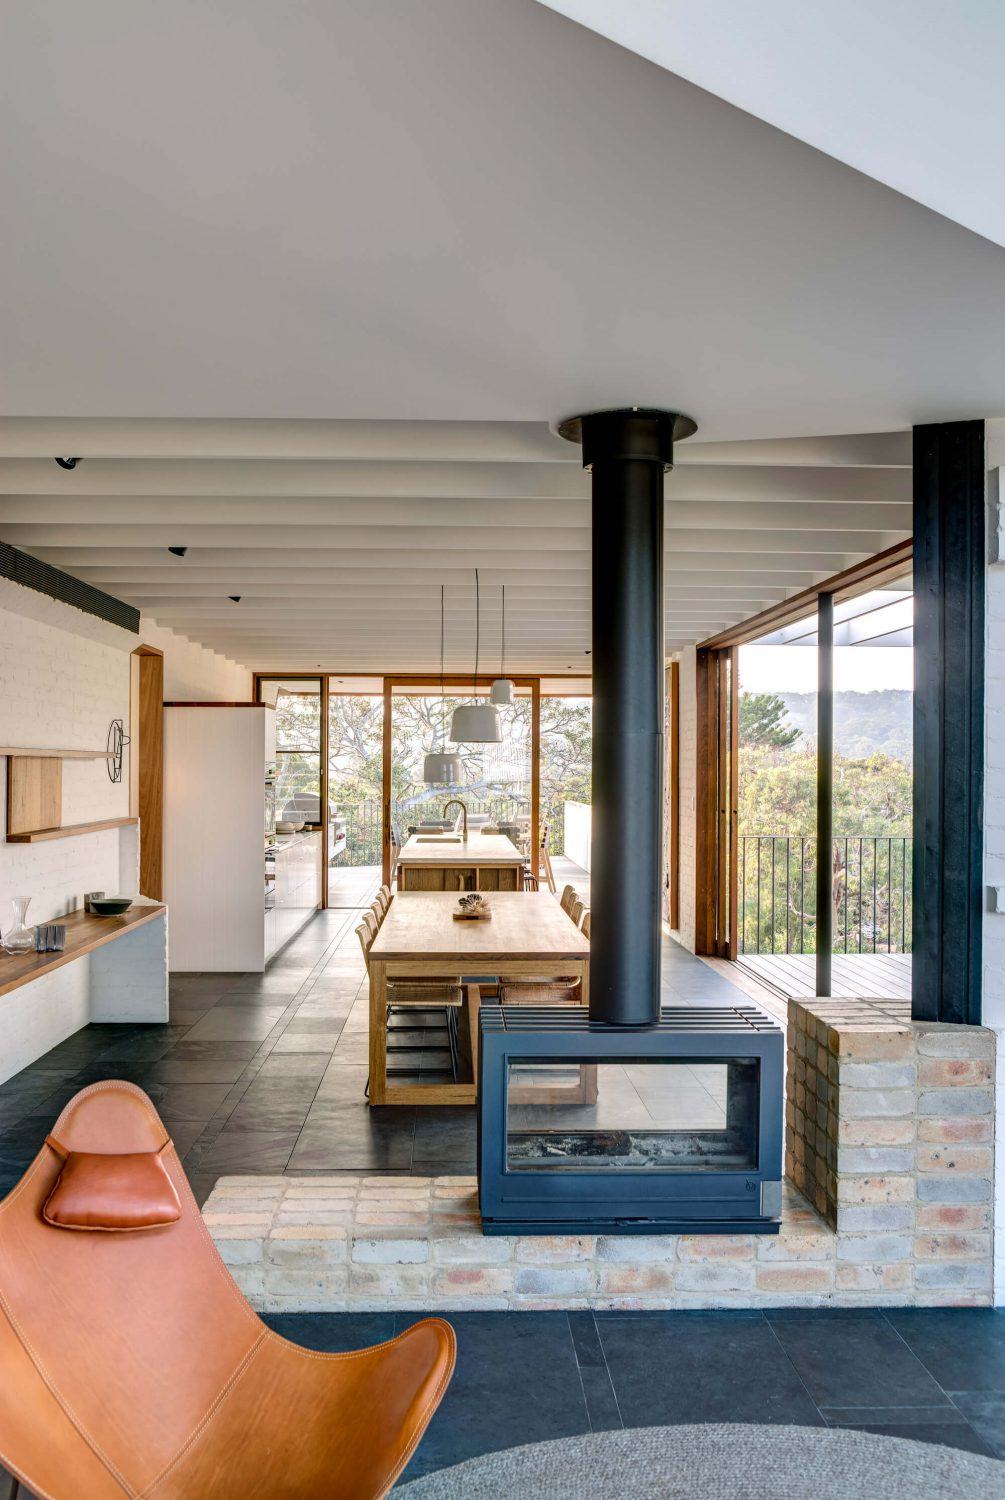 Breezeway House by David Boyle Architect